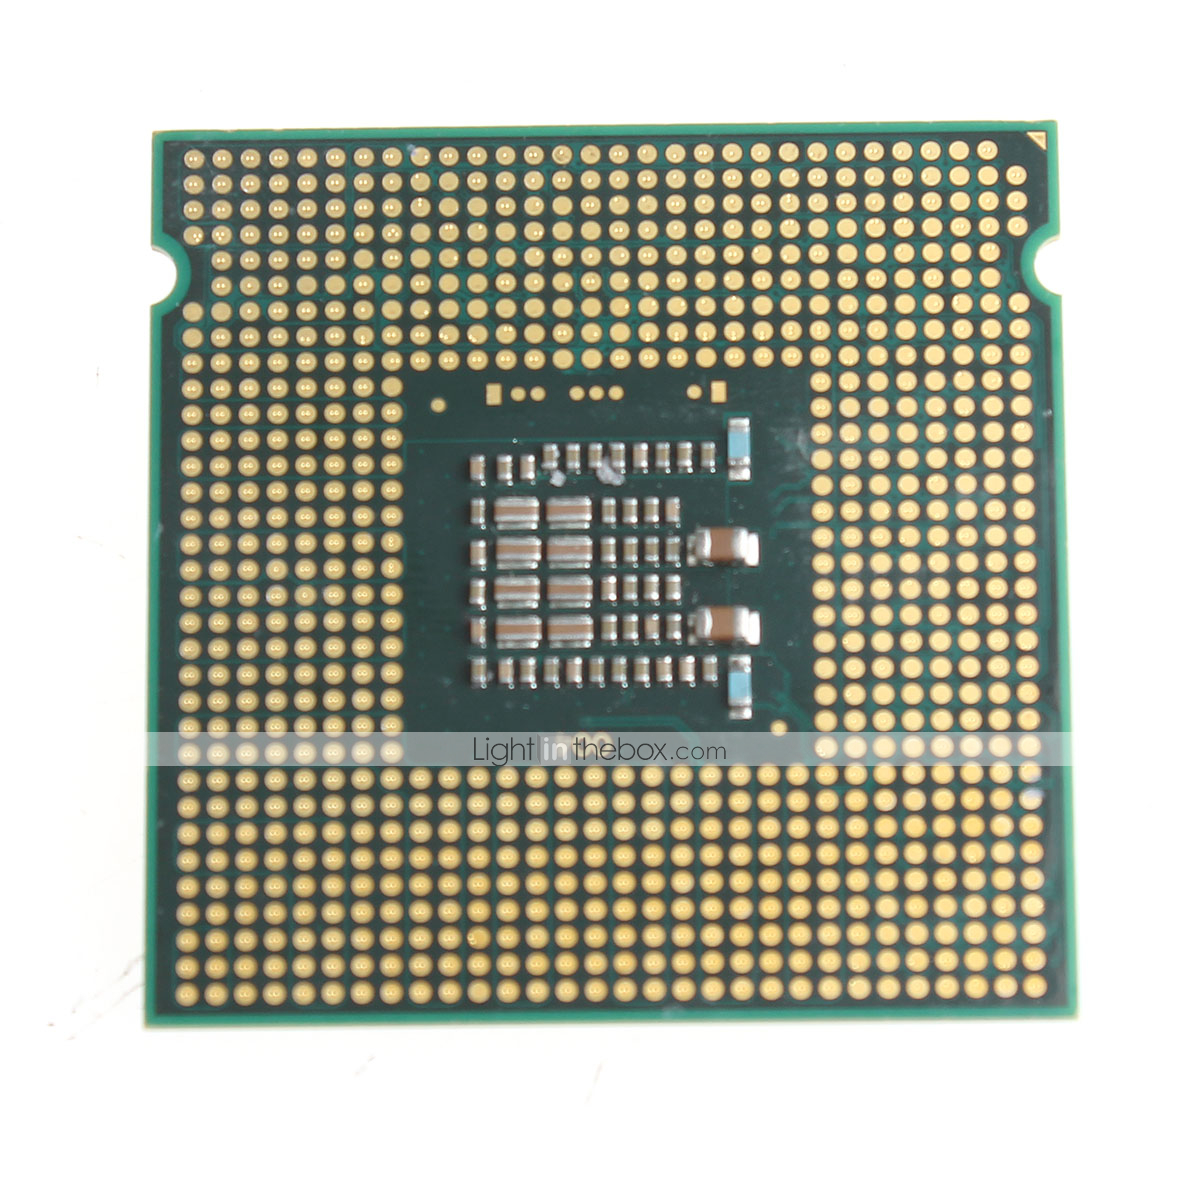 Bulk Genuine Intel Core 2 Duo E7500 293ghz 45 Nanometer Lga775 Prosesor C2d Photos